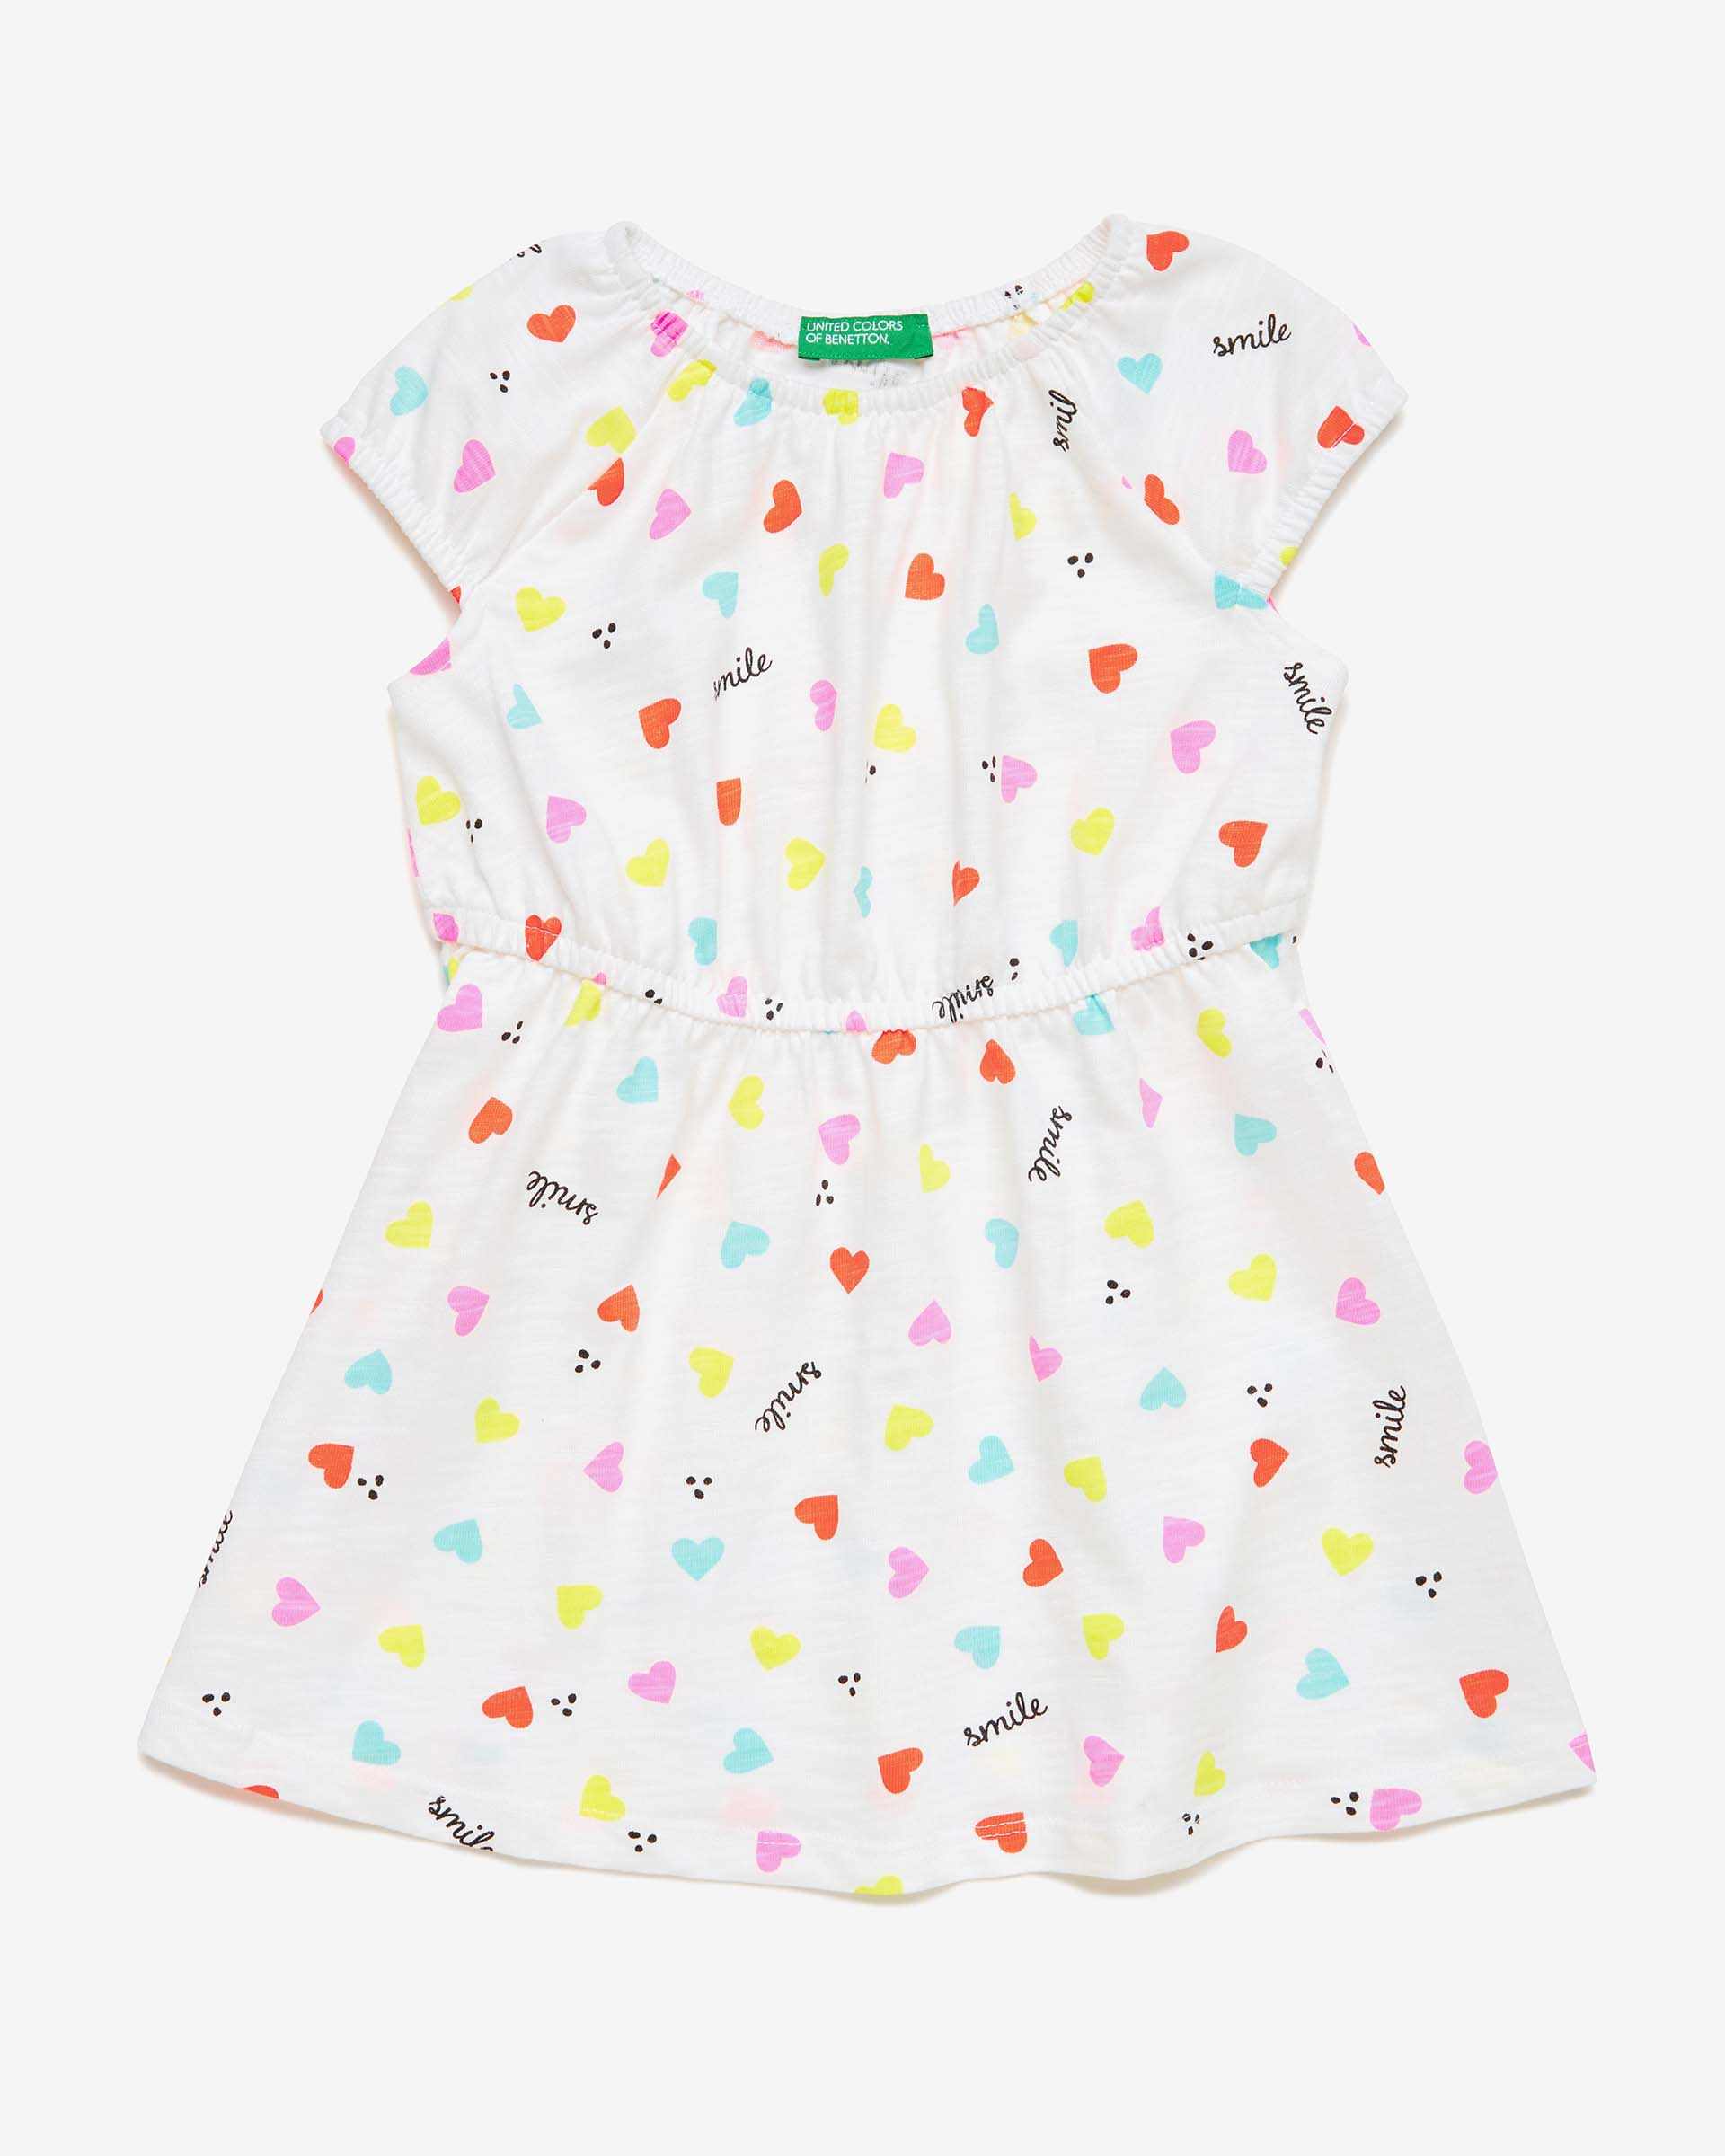 UNITED COLORS OF BENETTON 20P_3PL0F1A6P_65Y